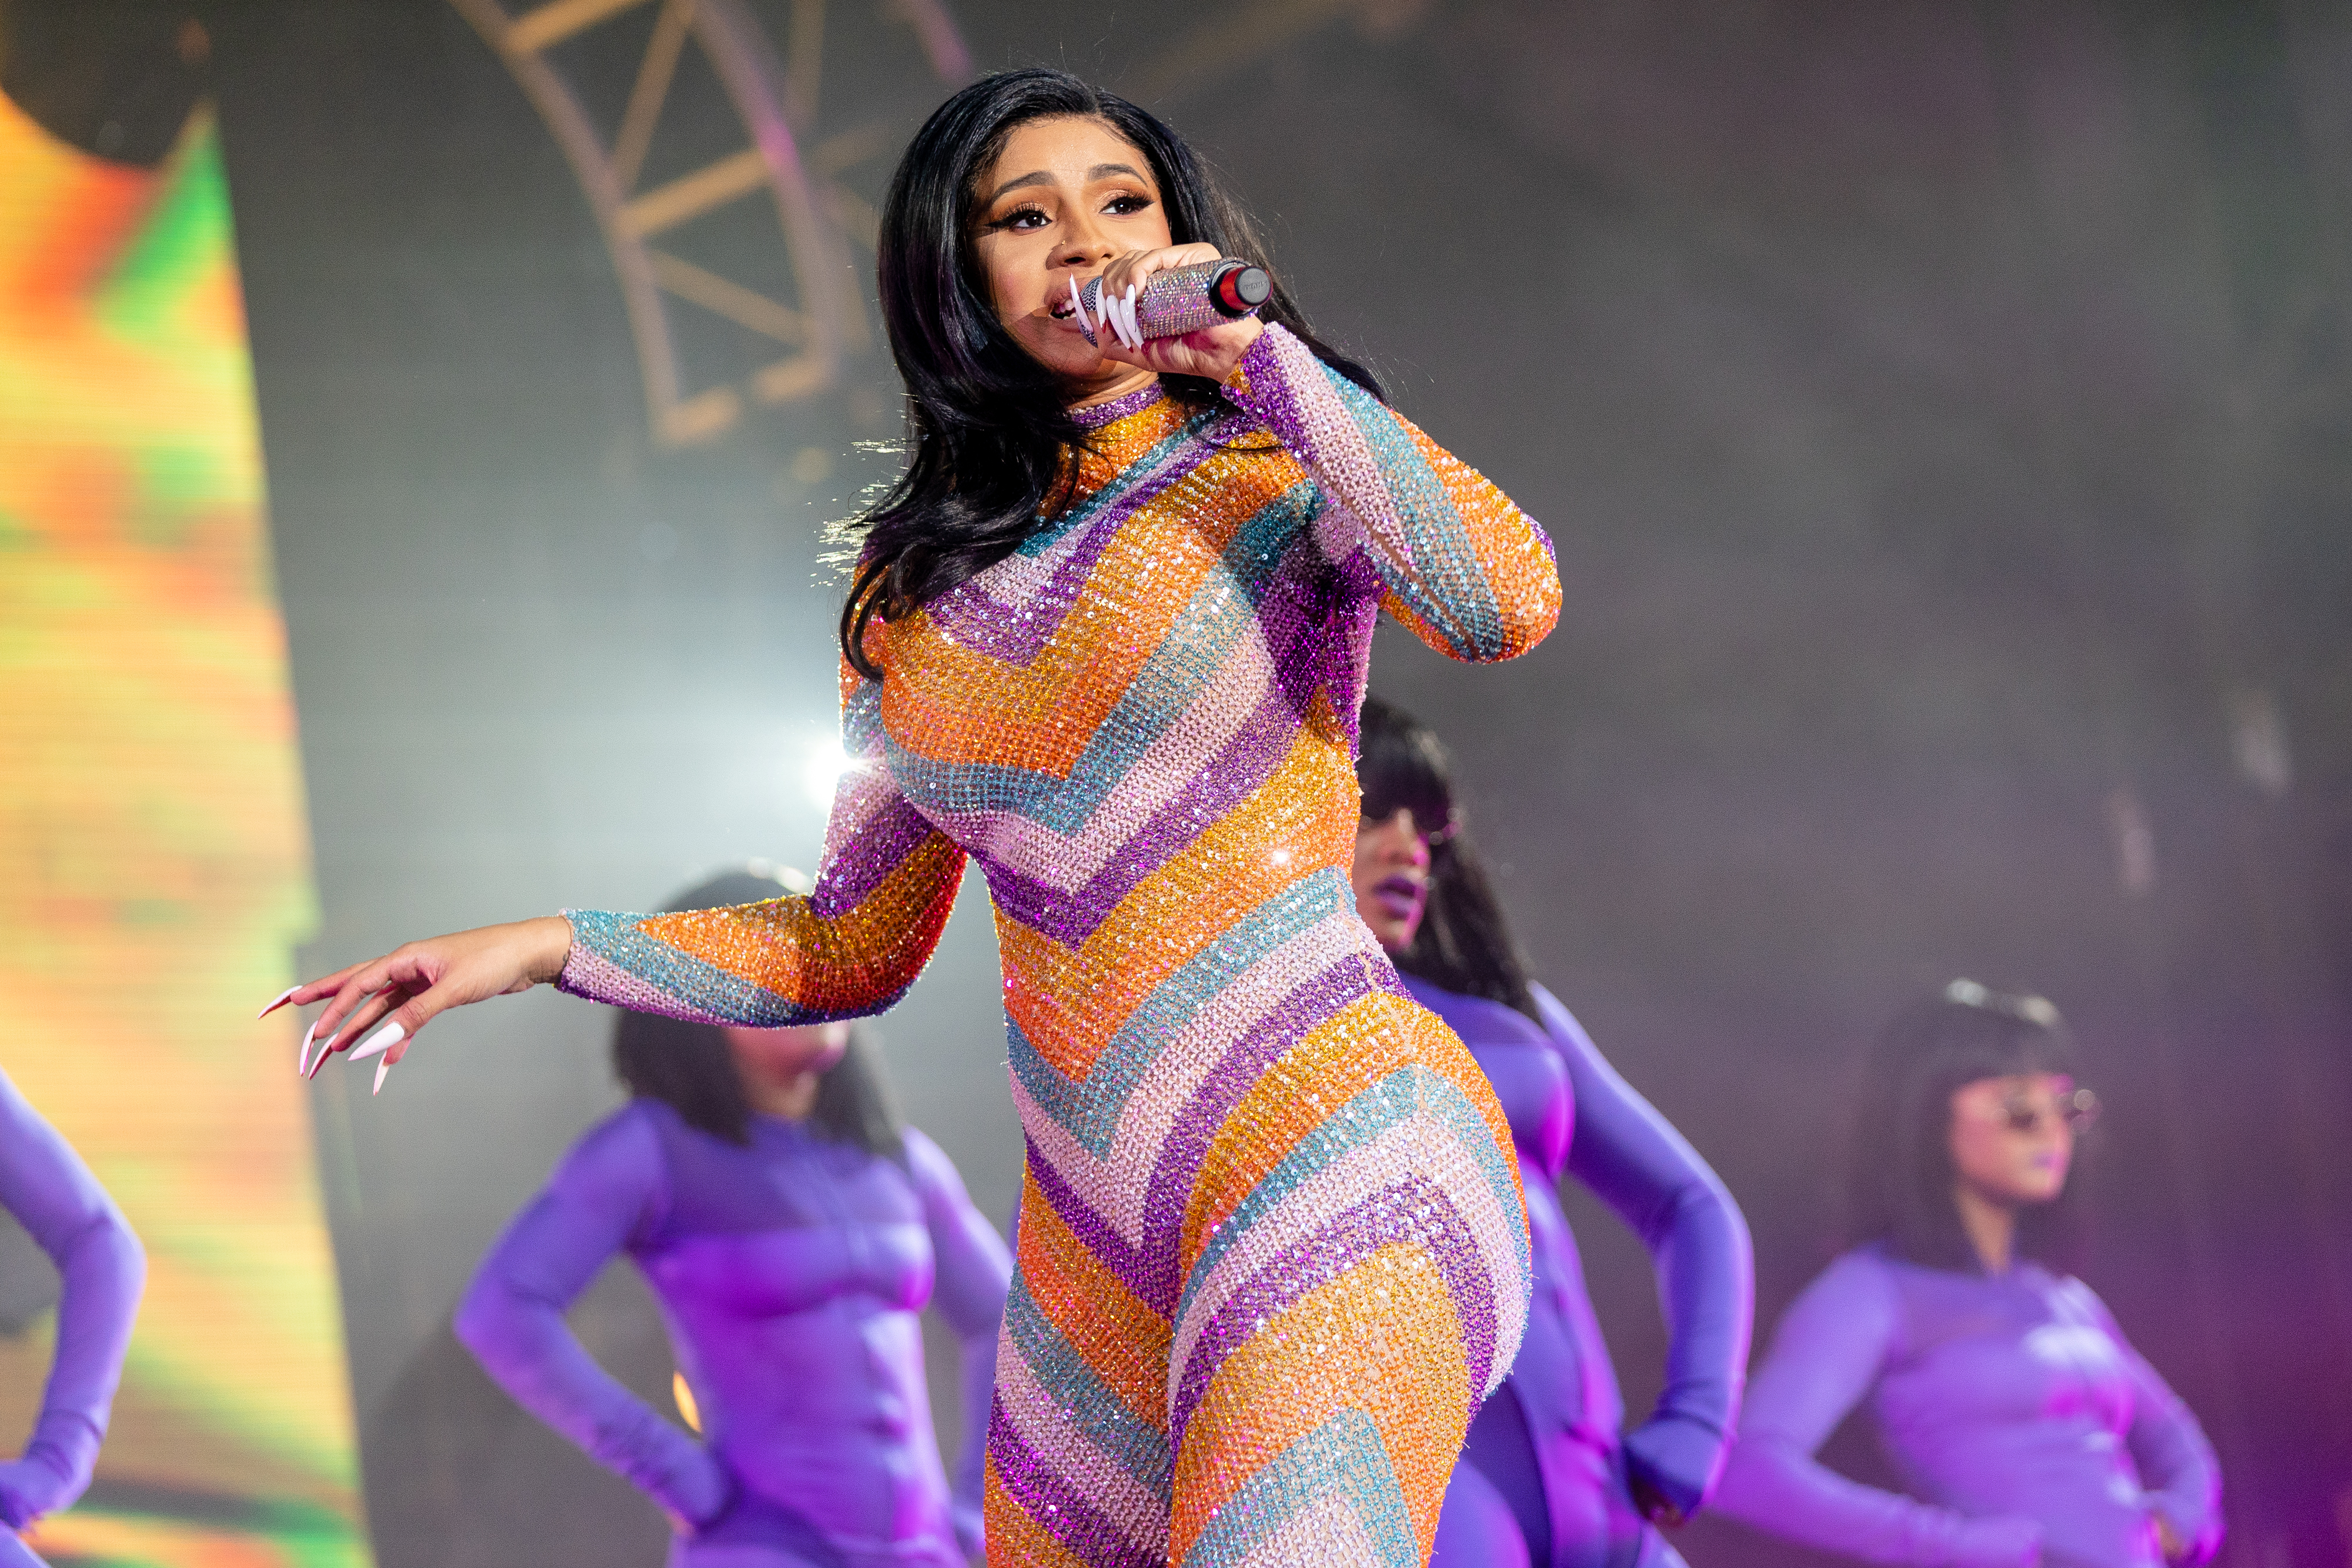 Cardi B Rapping: Cardi B Had A Wardrobe Malfunction At Bonnaroo, And She